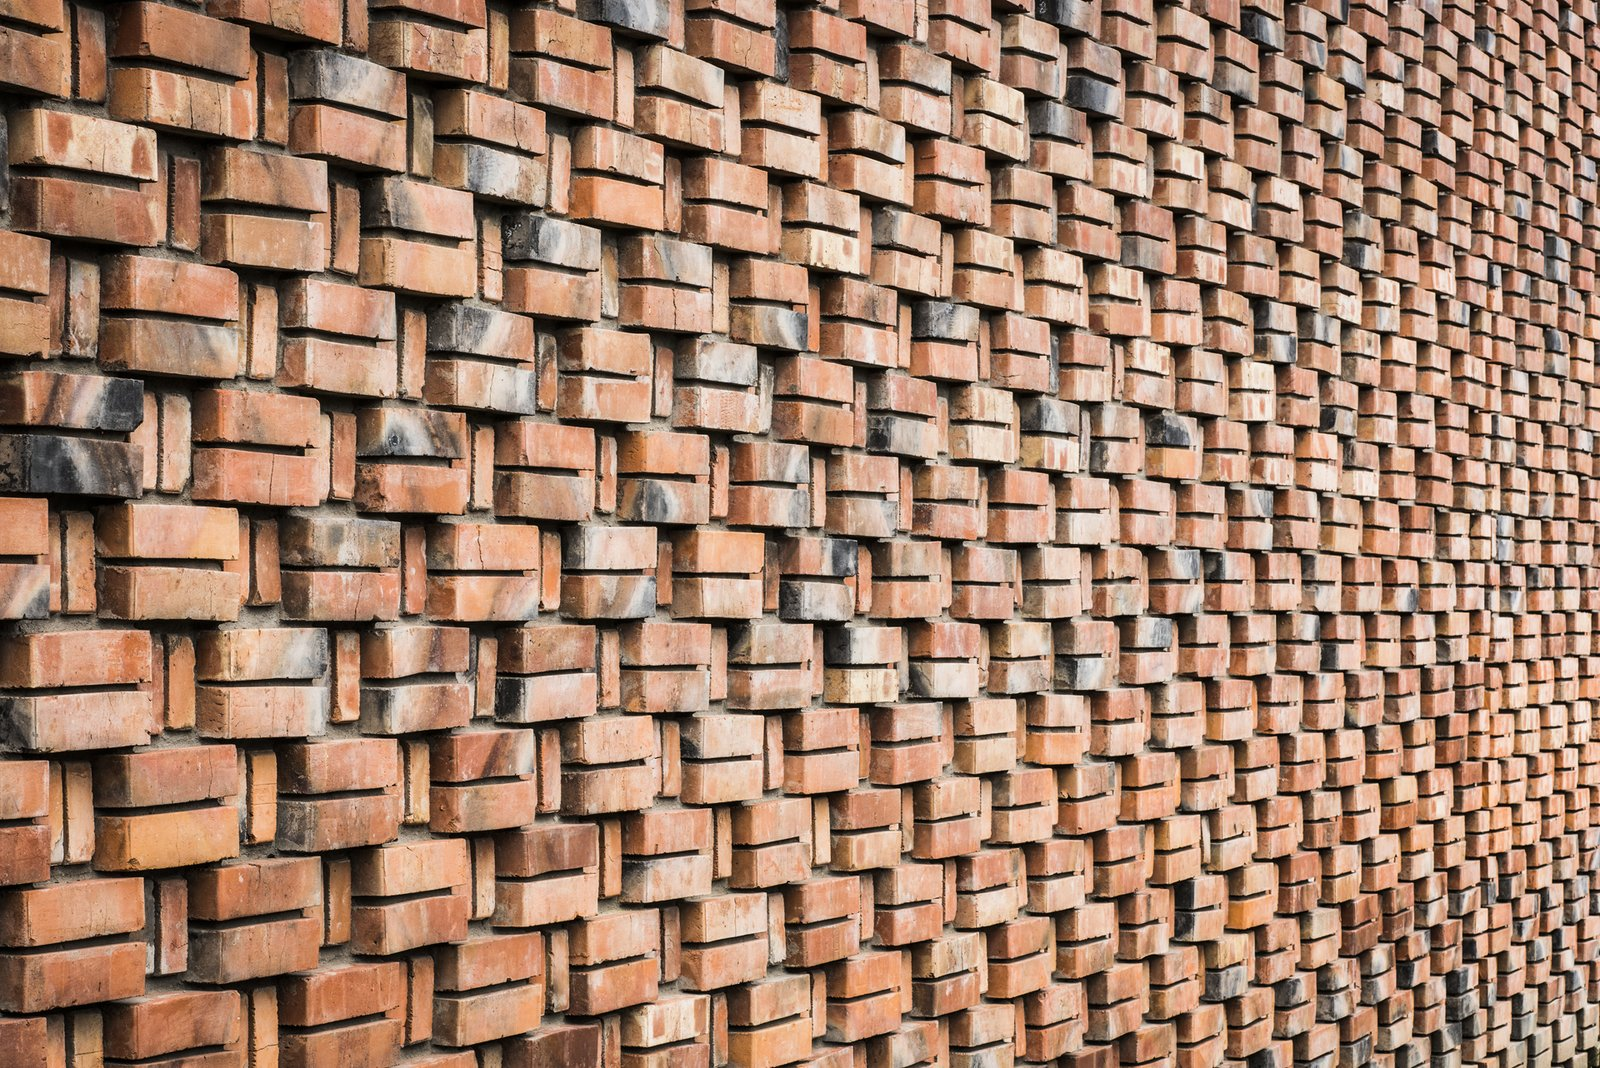 Mesmerizing Brickwork Wraps This House in Poland